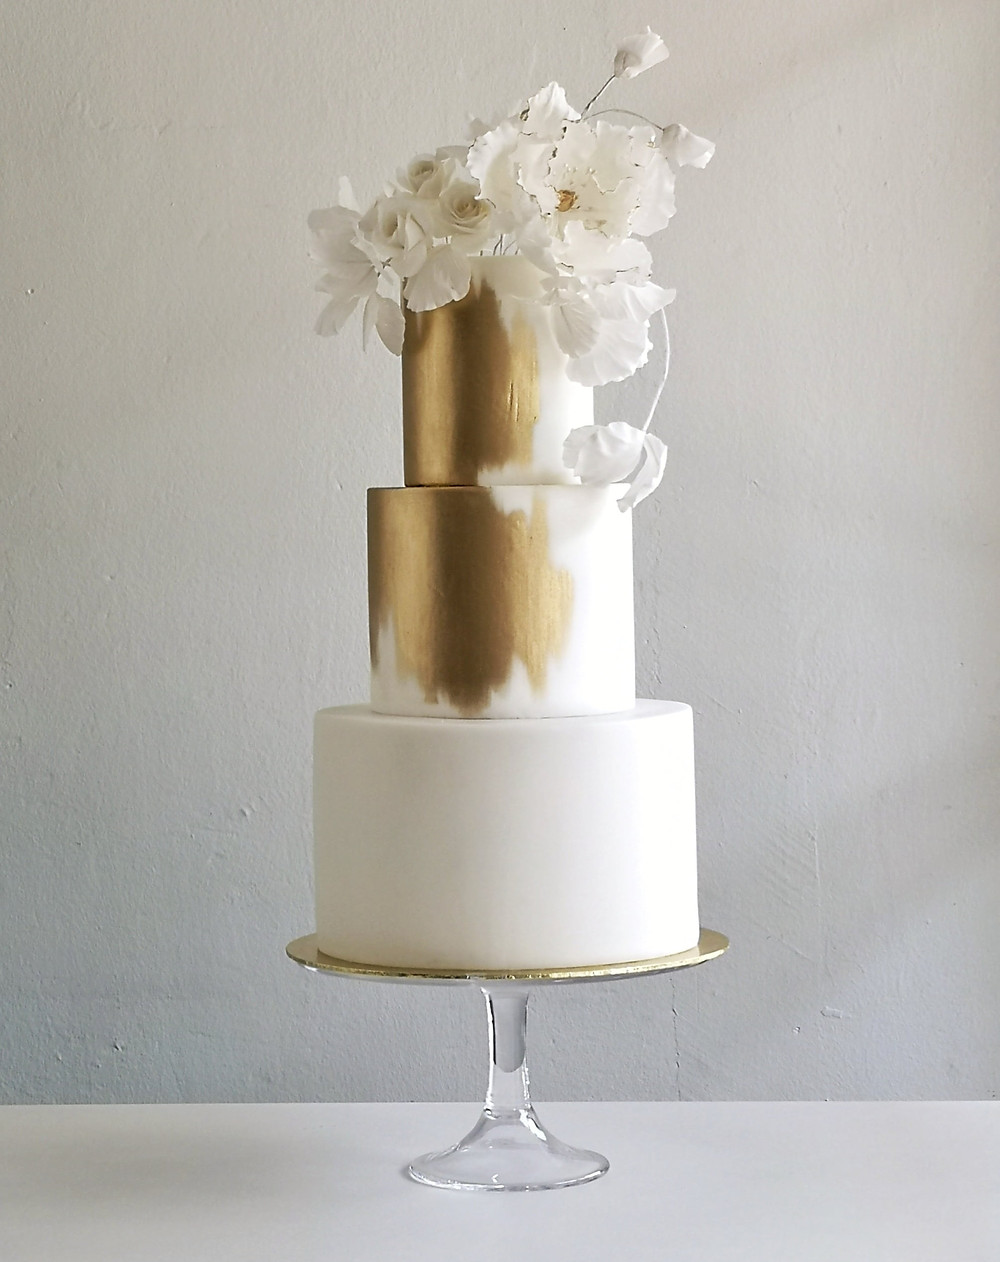 3 Tier White Wedding Cake with a Splash of Gold and white flowers